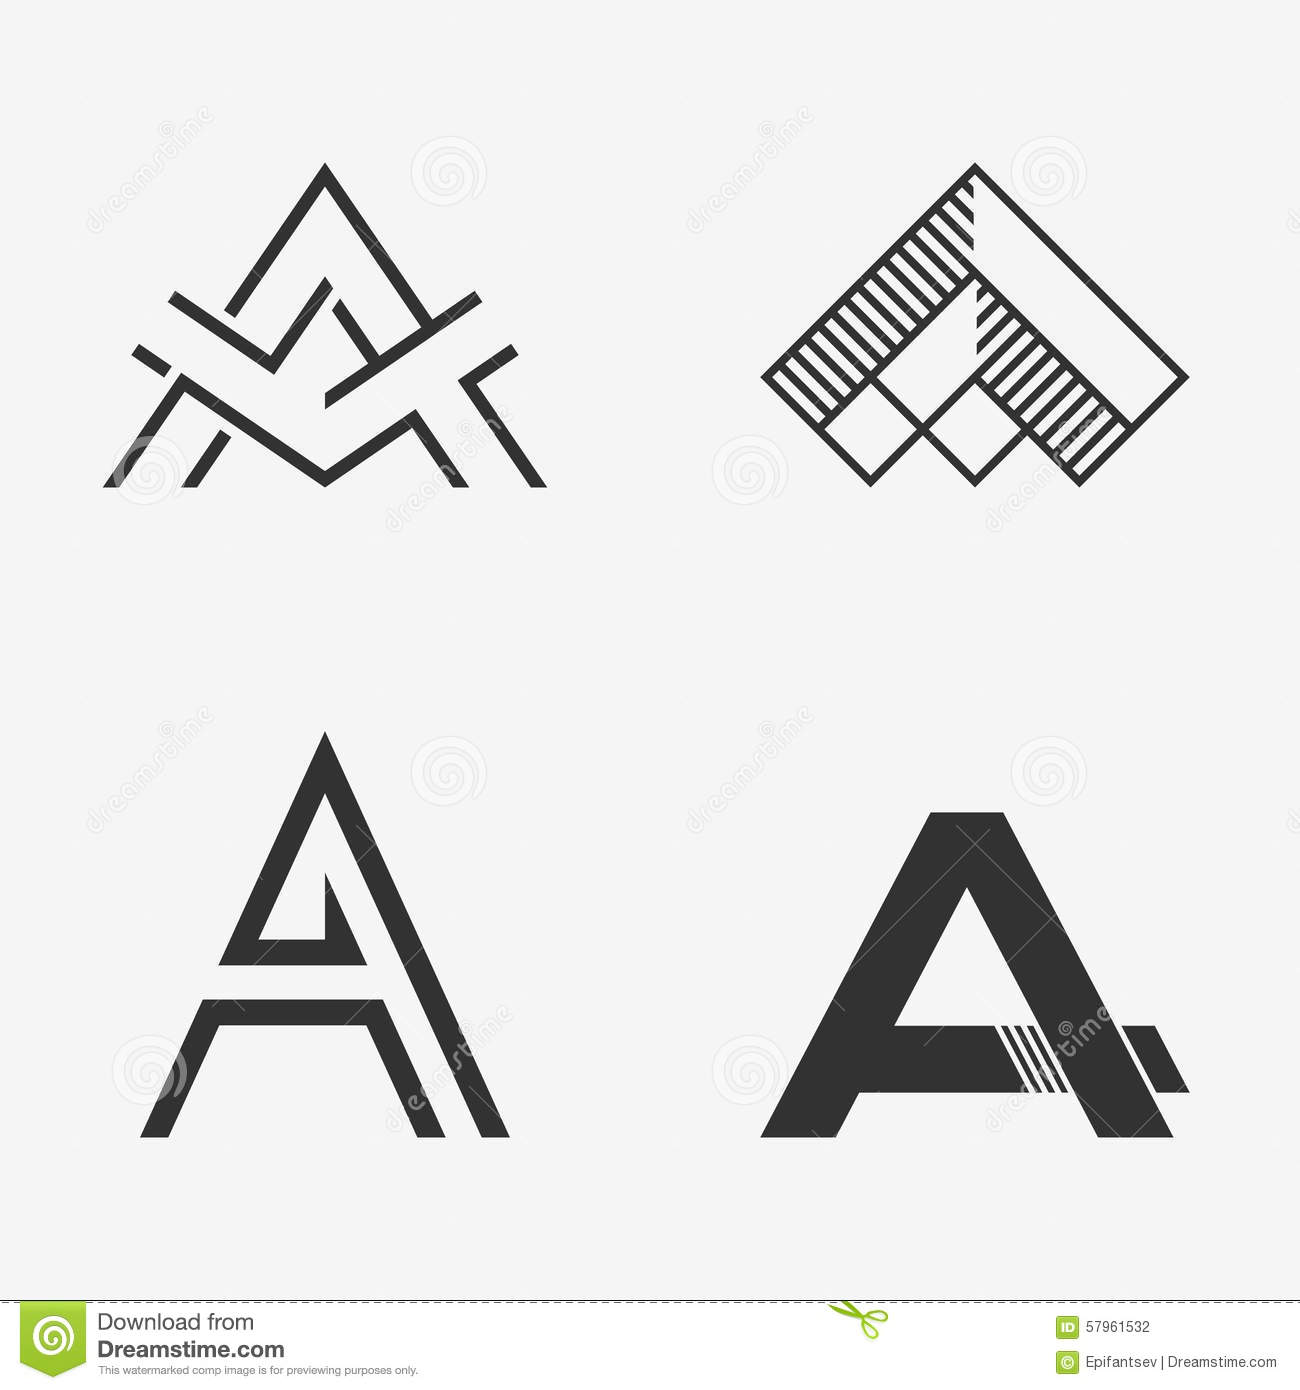 The Set Of Letter A Sign Logo Icon Design Template Elements Stock